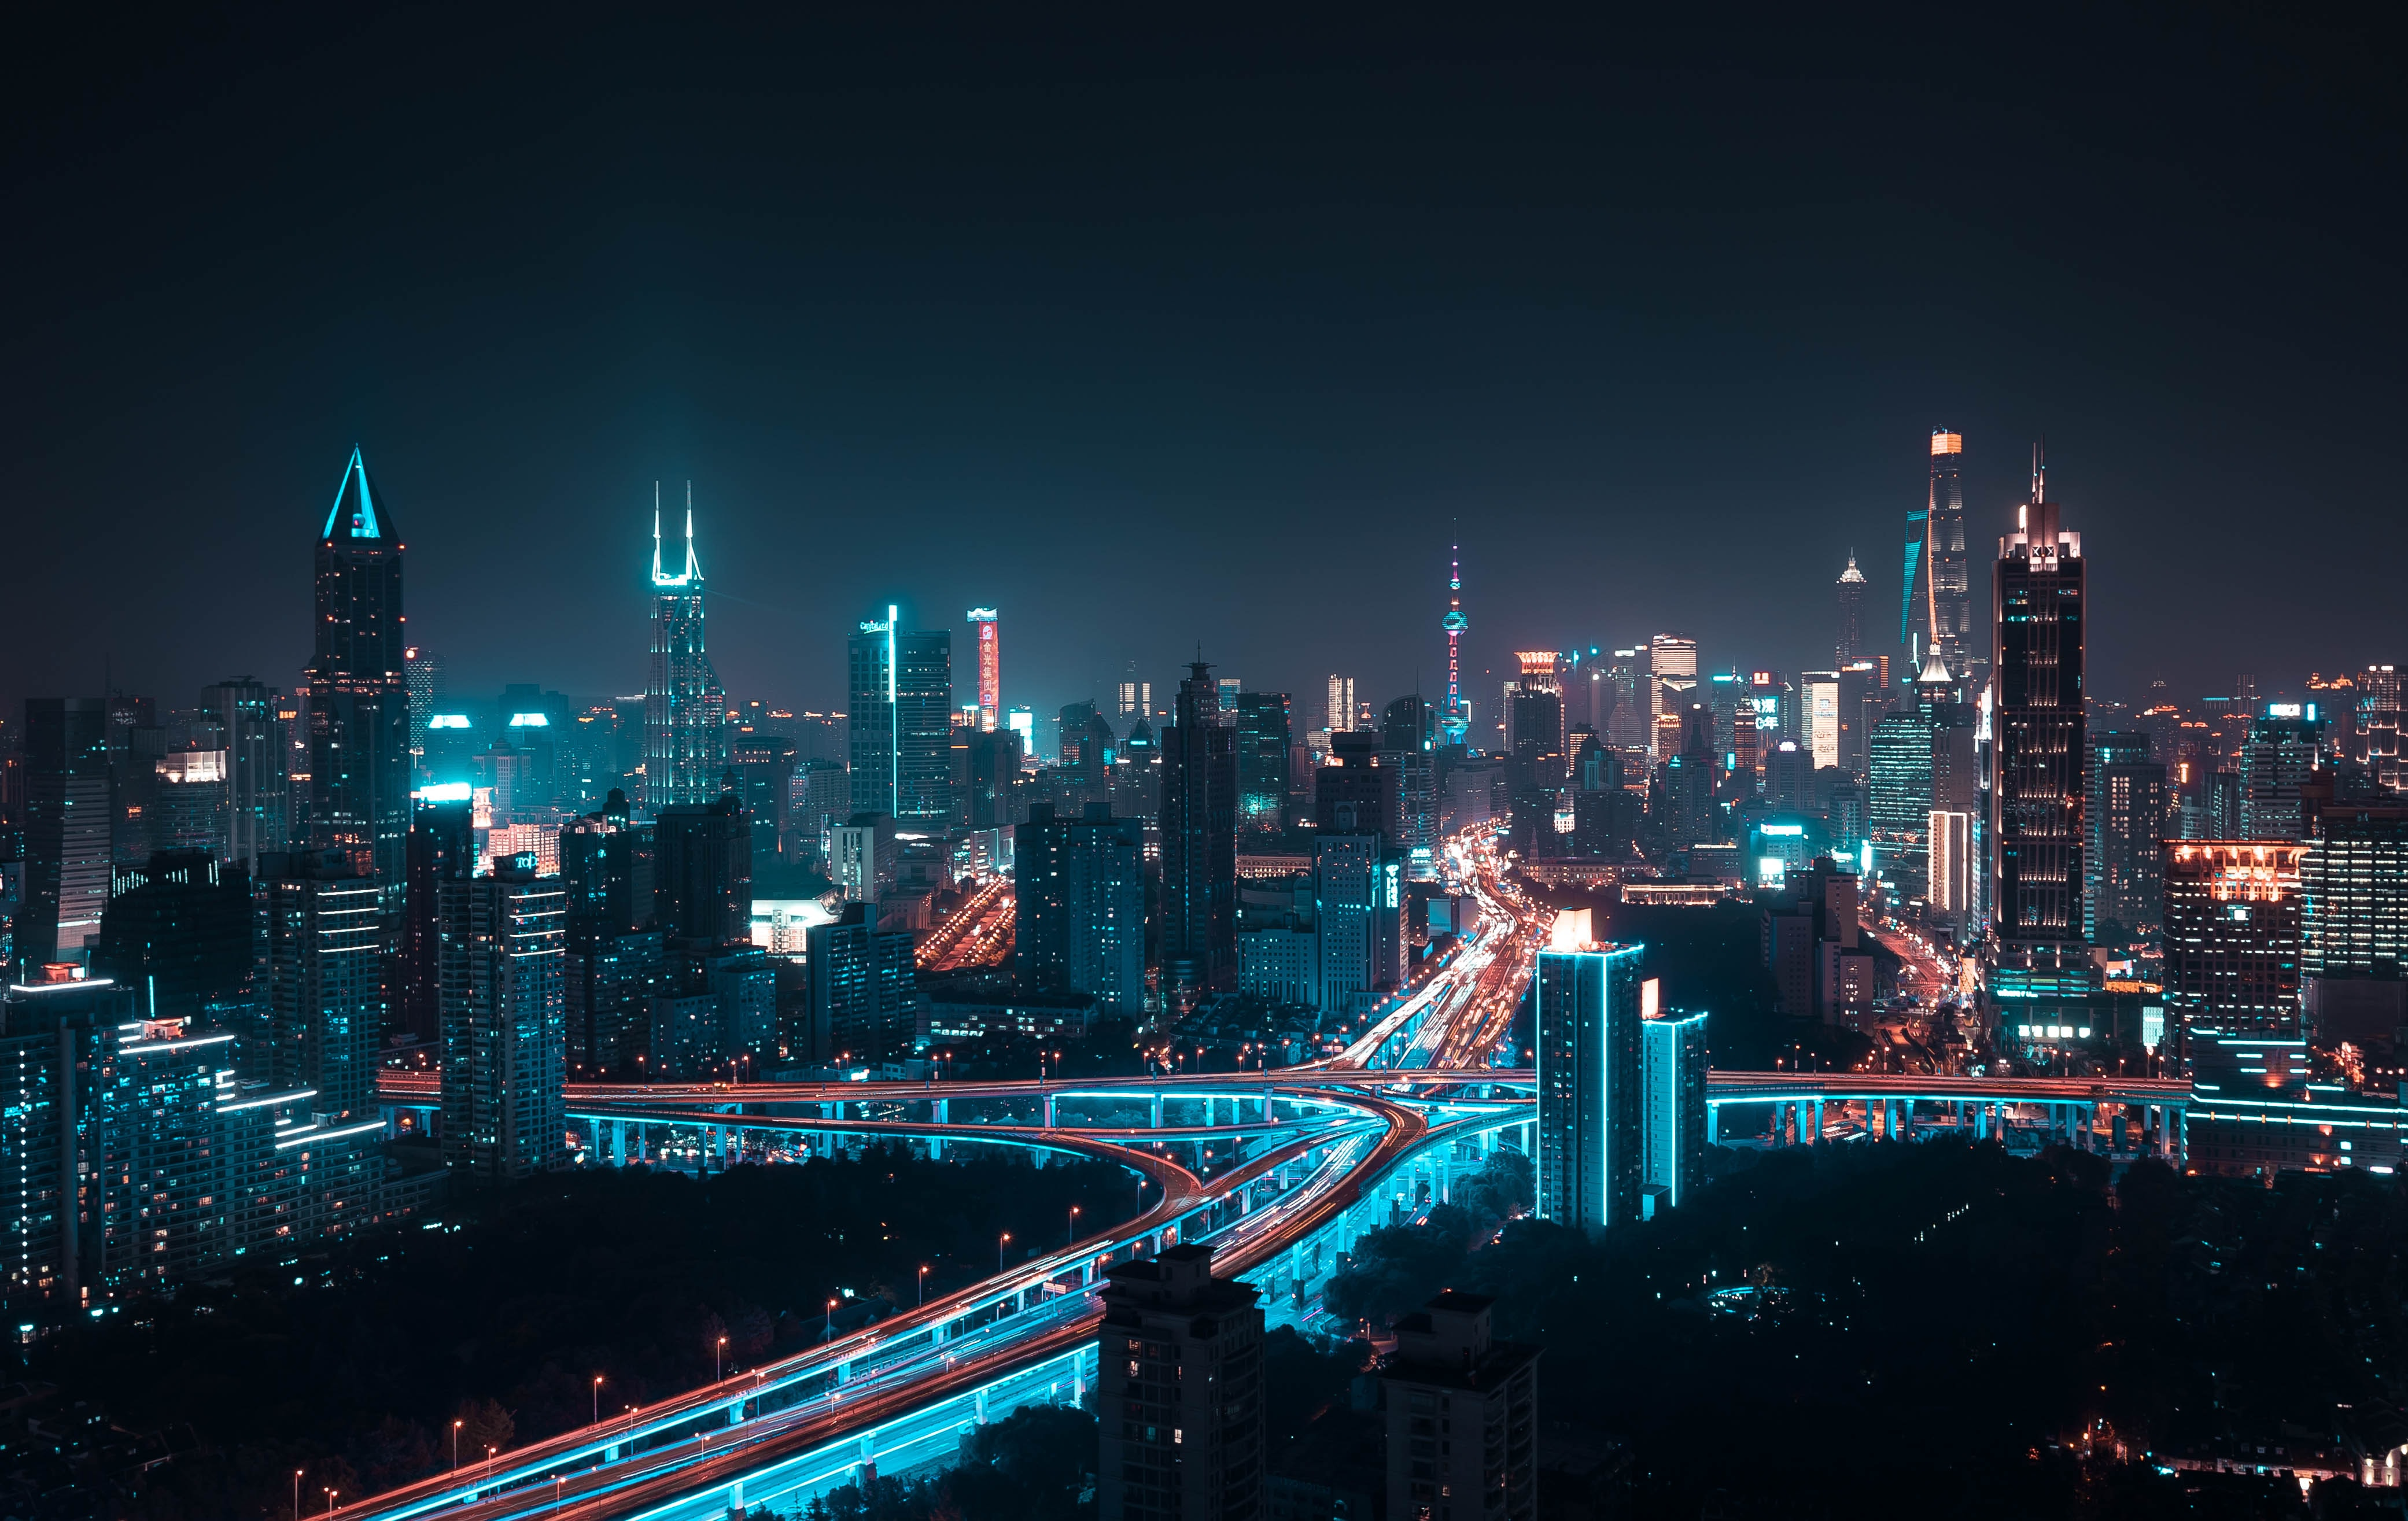 aerial photography of lightened city buildings at night time